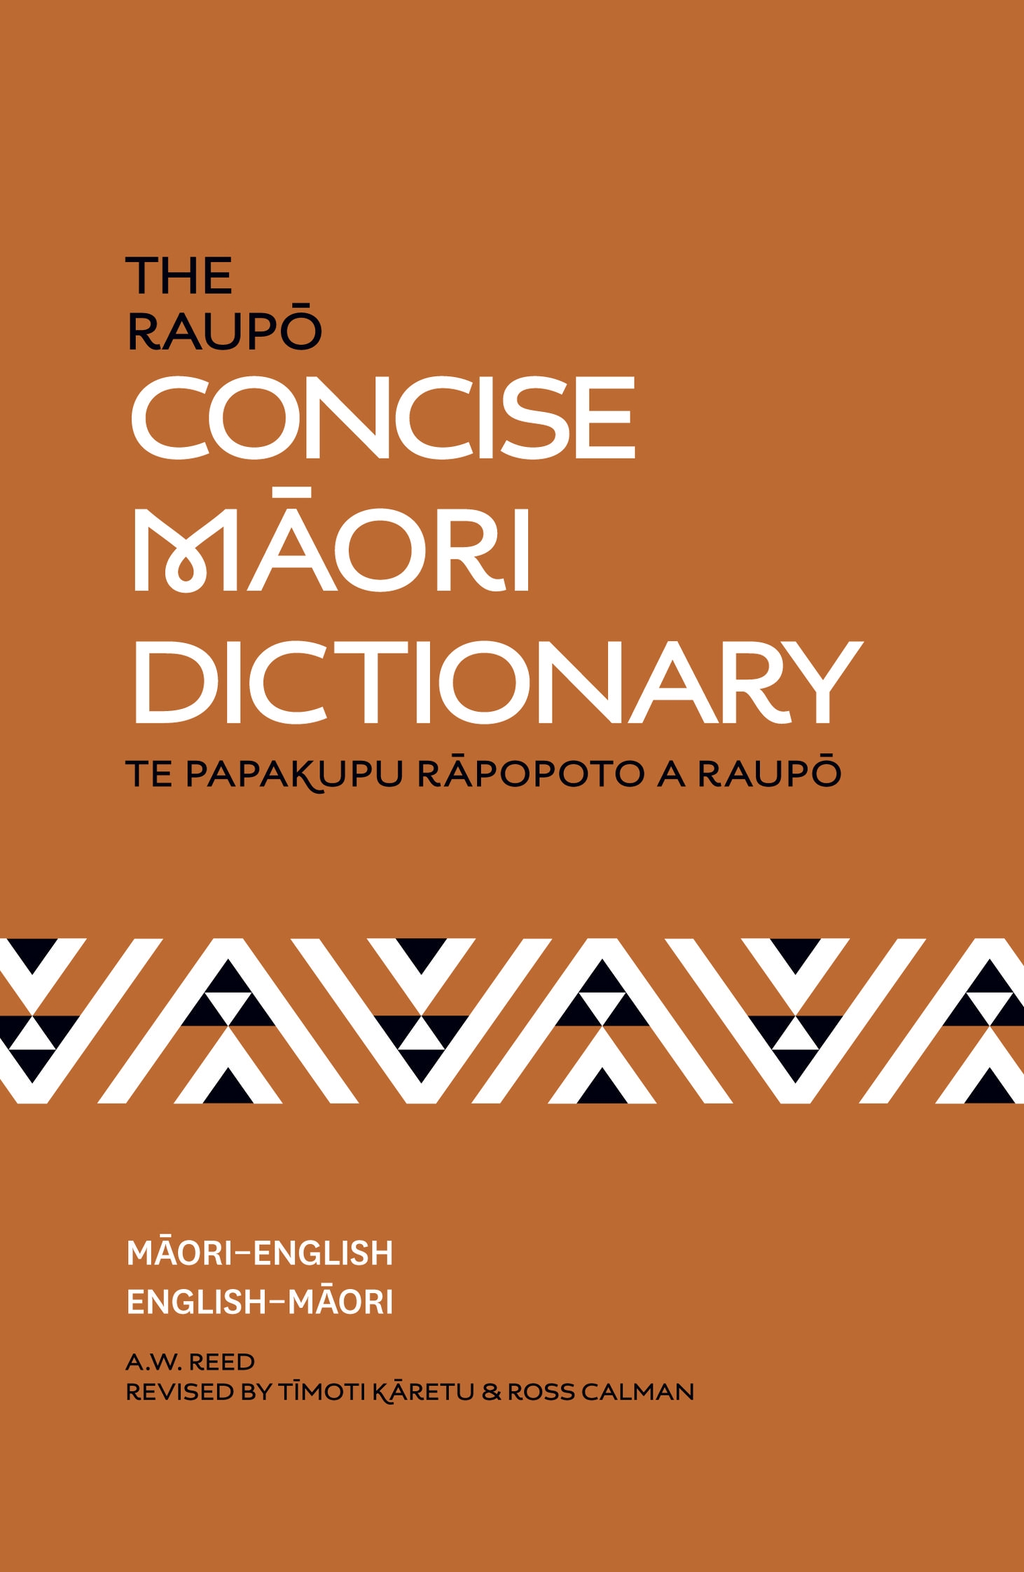 The Raupo Concise Maori Dictionary